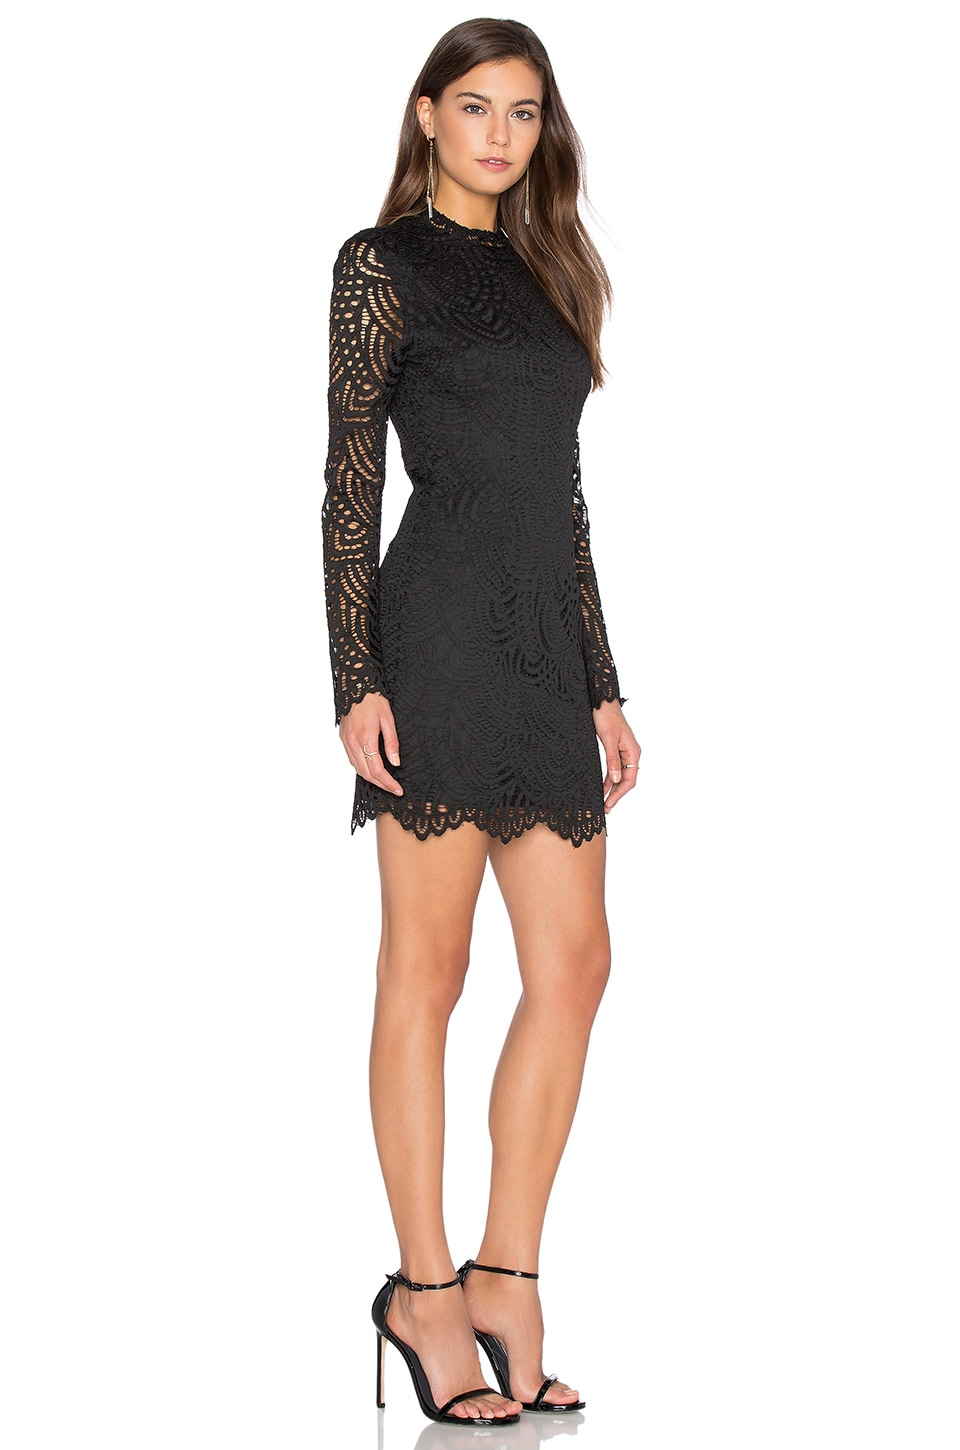 4da64563667 Bobi BLACK Lace Crochet Overlay Long Sleeve Crew Neck Mini Dress in Black